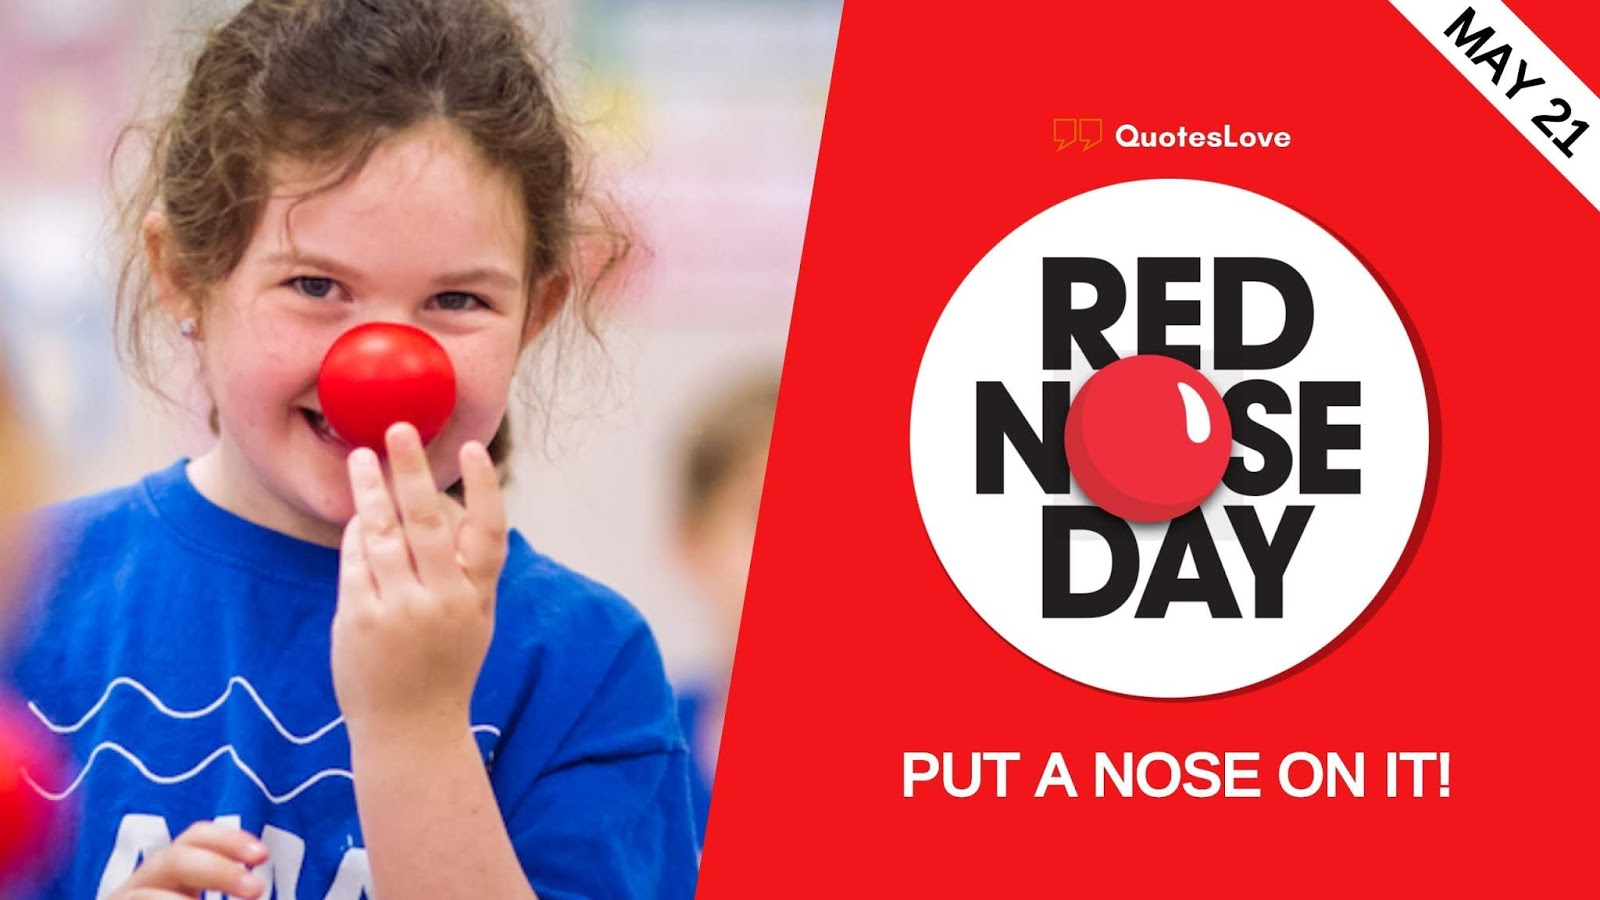 Red Nose Day Quotes, Sayings Meaning, History, Images, Pictures, Wallpaper